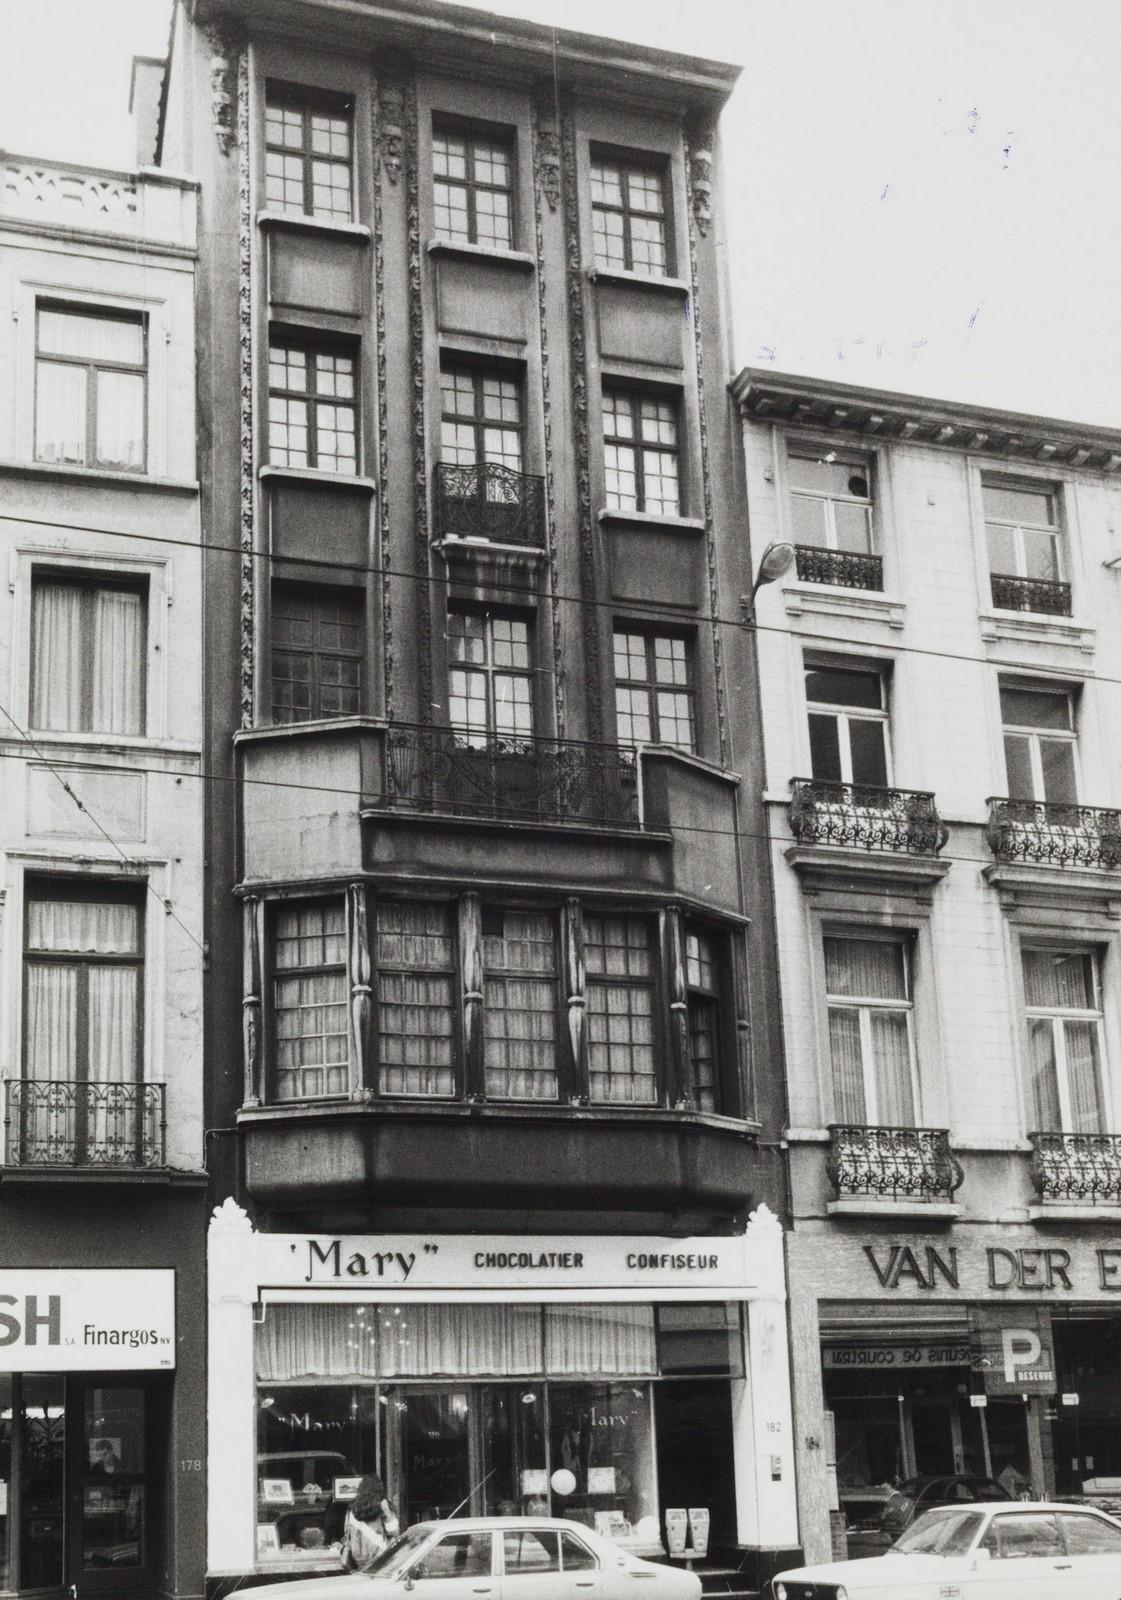 rue Royale 180-182 (act. 178)., 1981